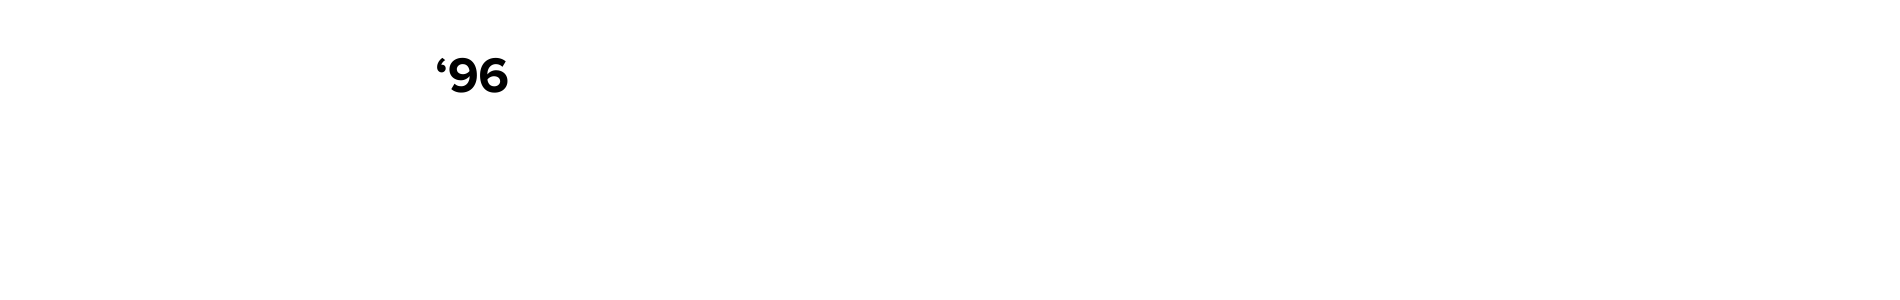 A clickable icon of ccdeclo's history in 1996.